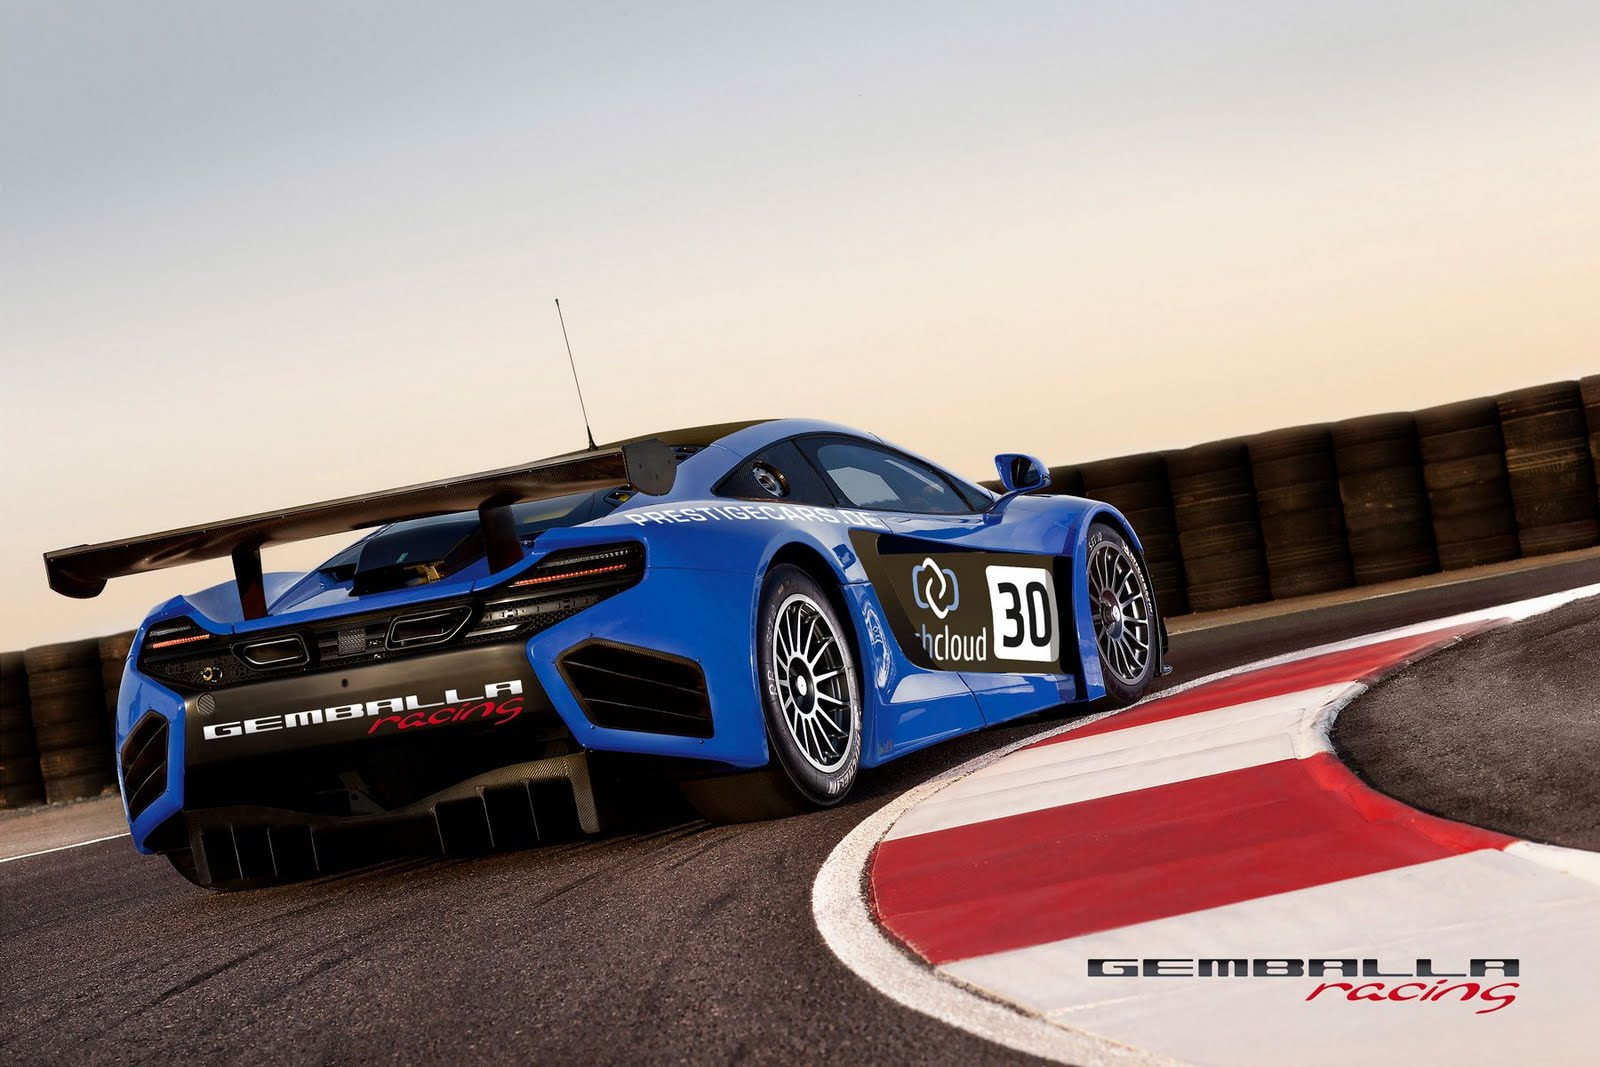 Gemballa racing McLaren MP4 12C GT3 2 Gemballa to Launch McLaren MP4 12C GT3 Models